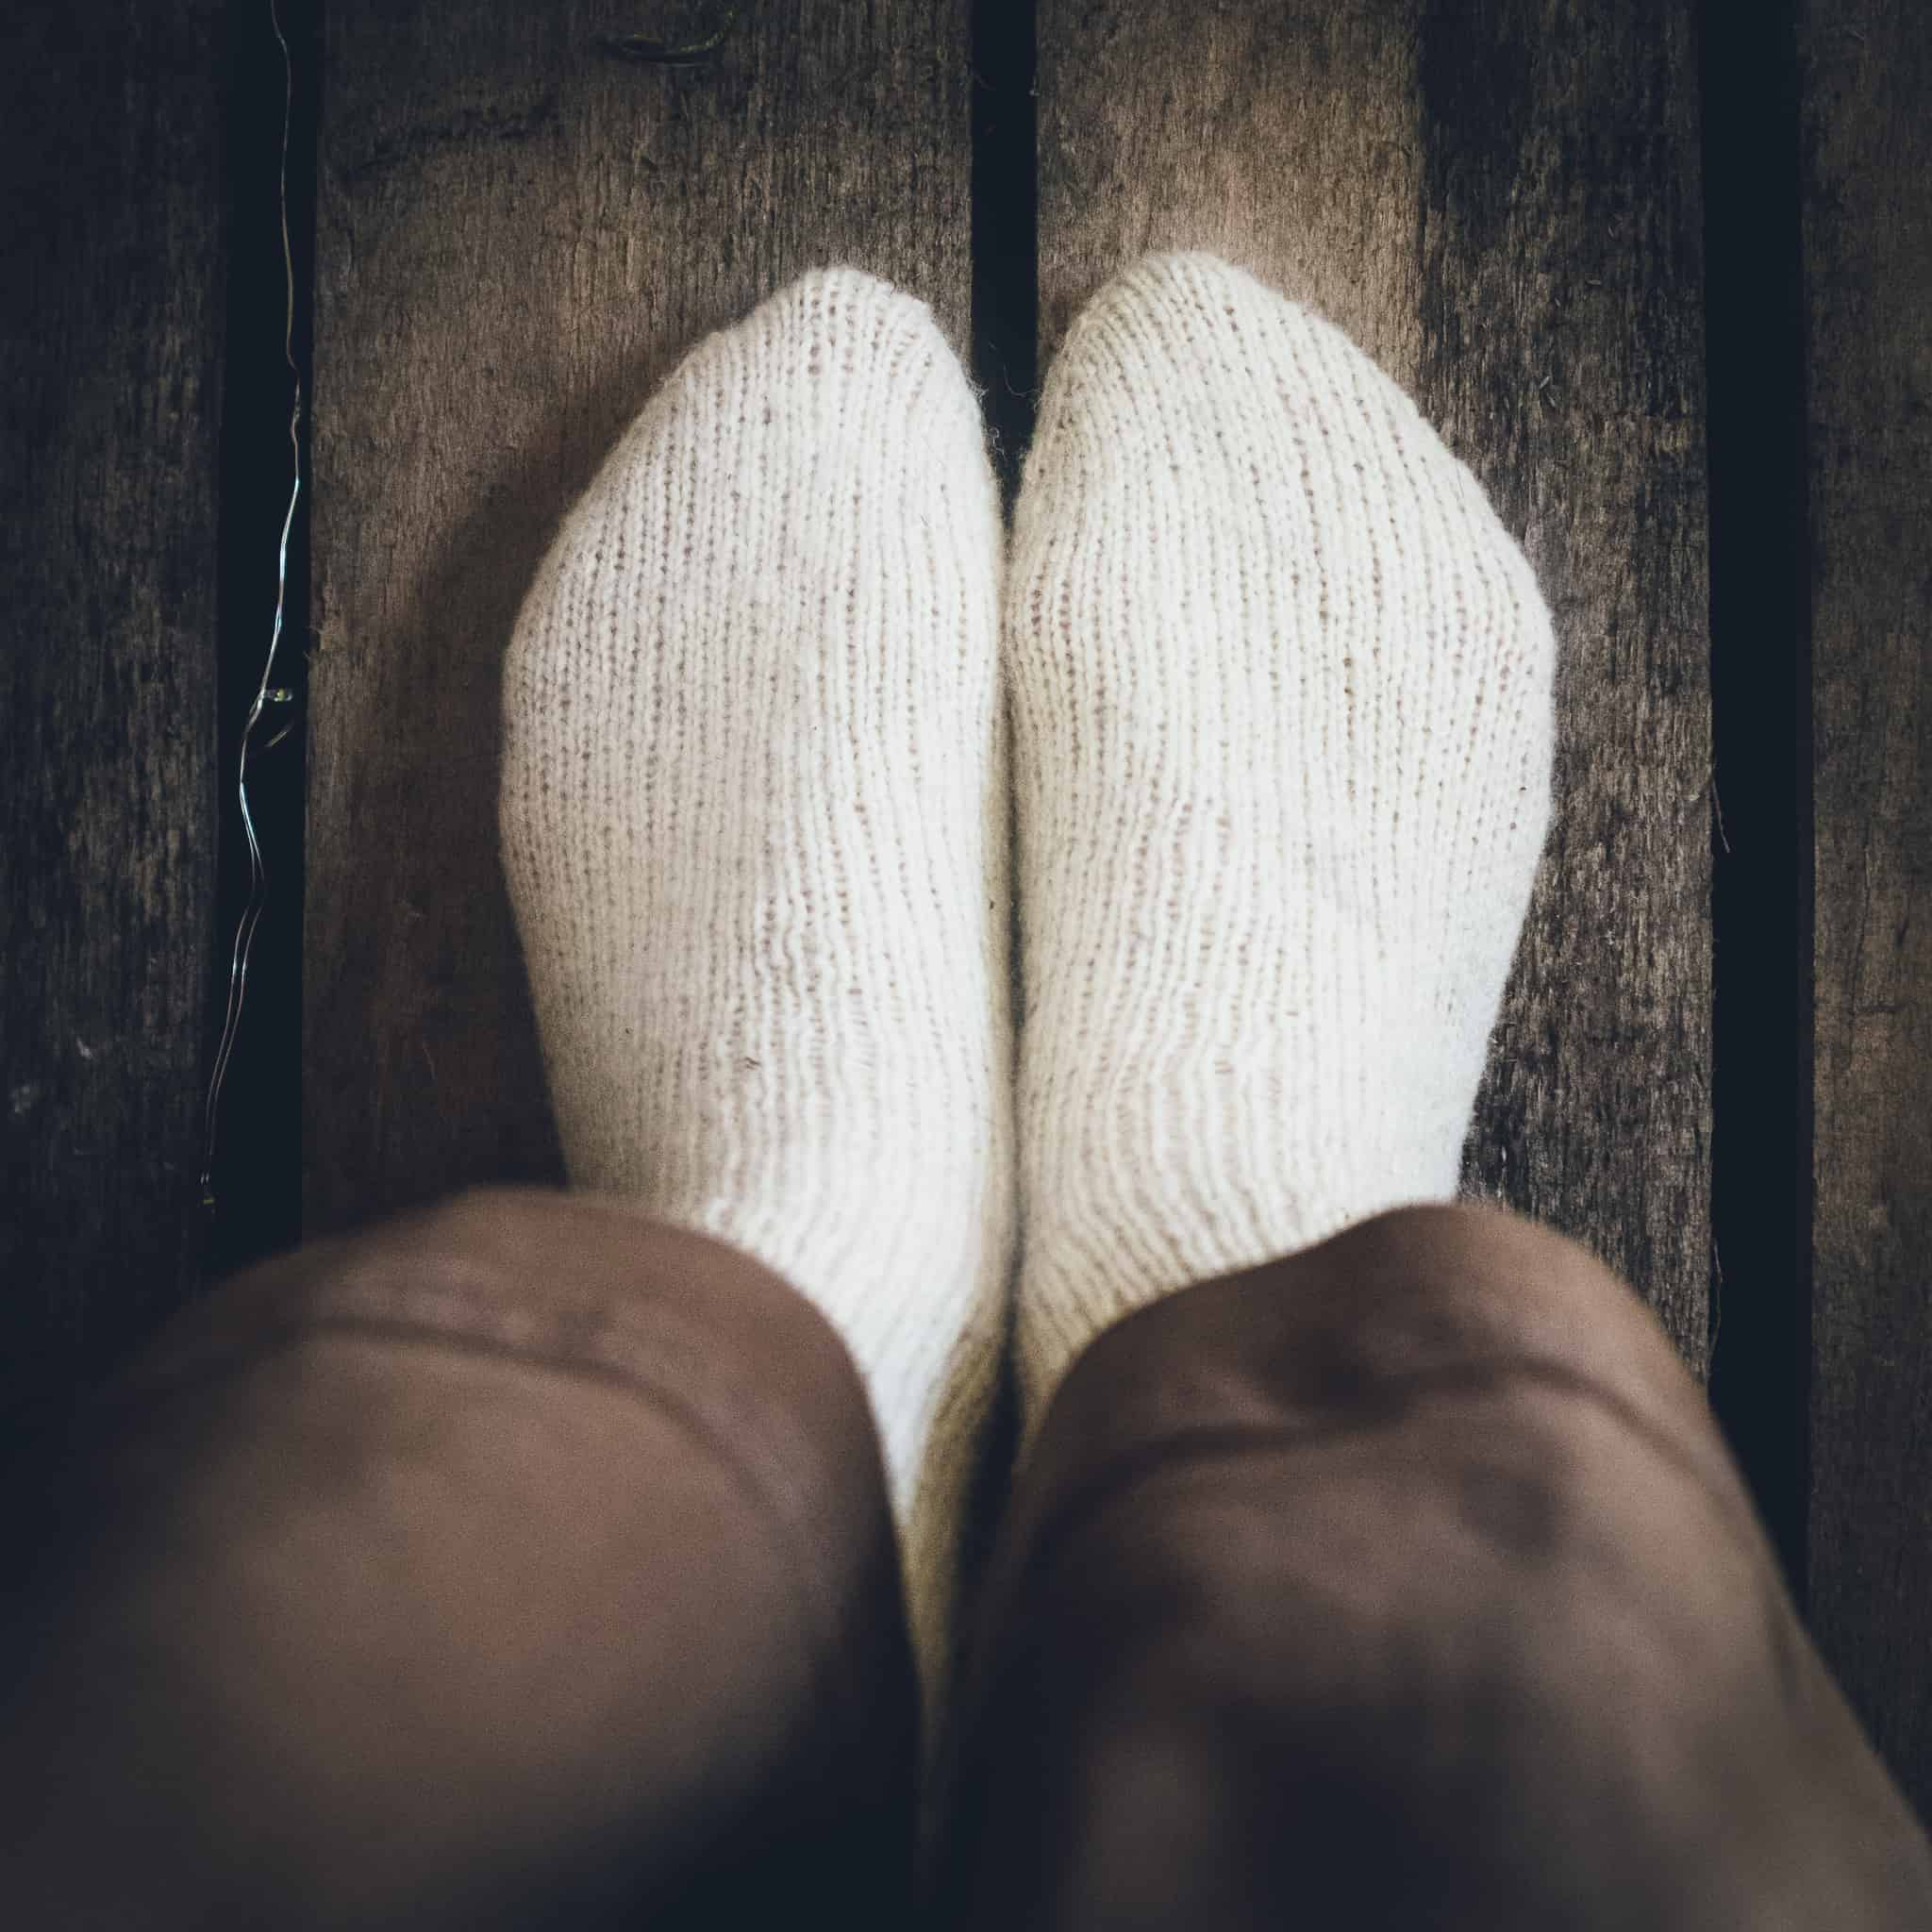 A view of white handknit socks from above.